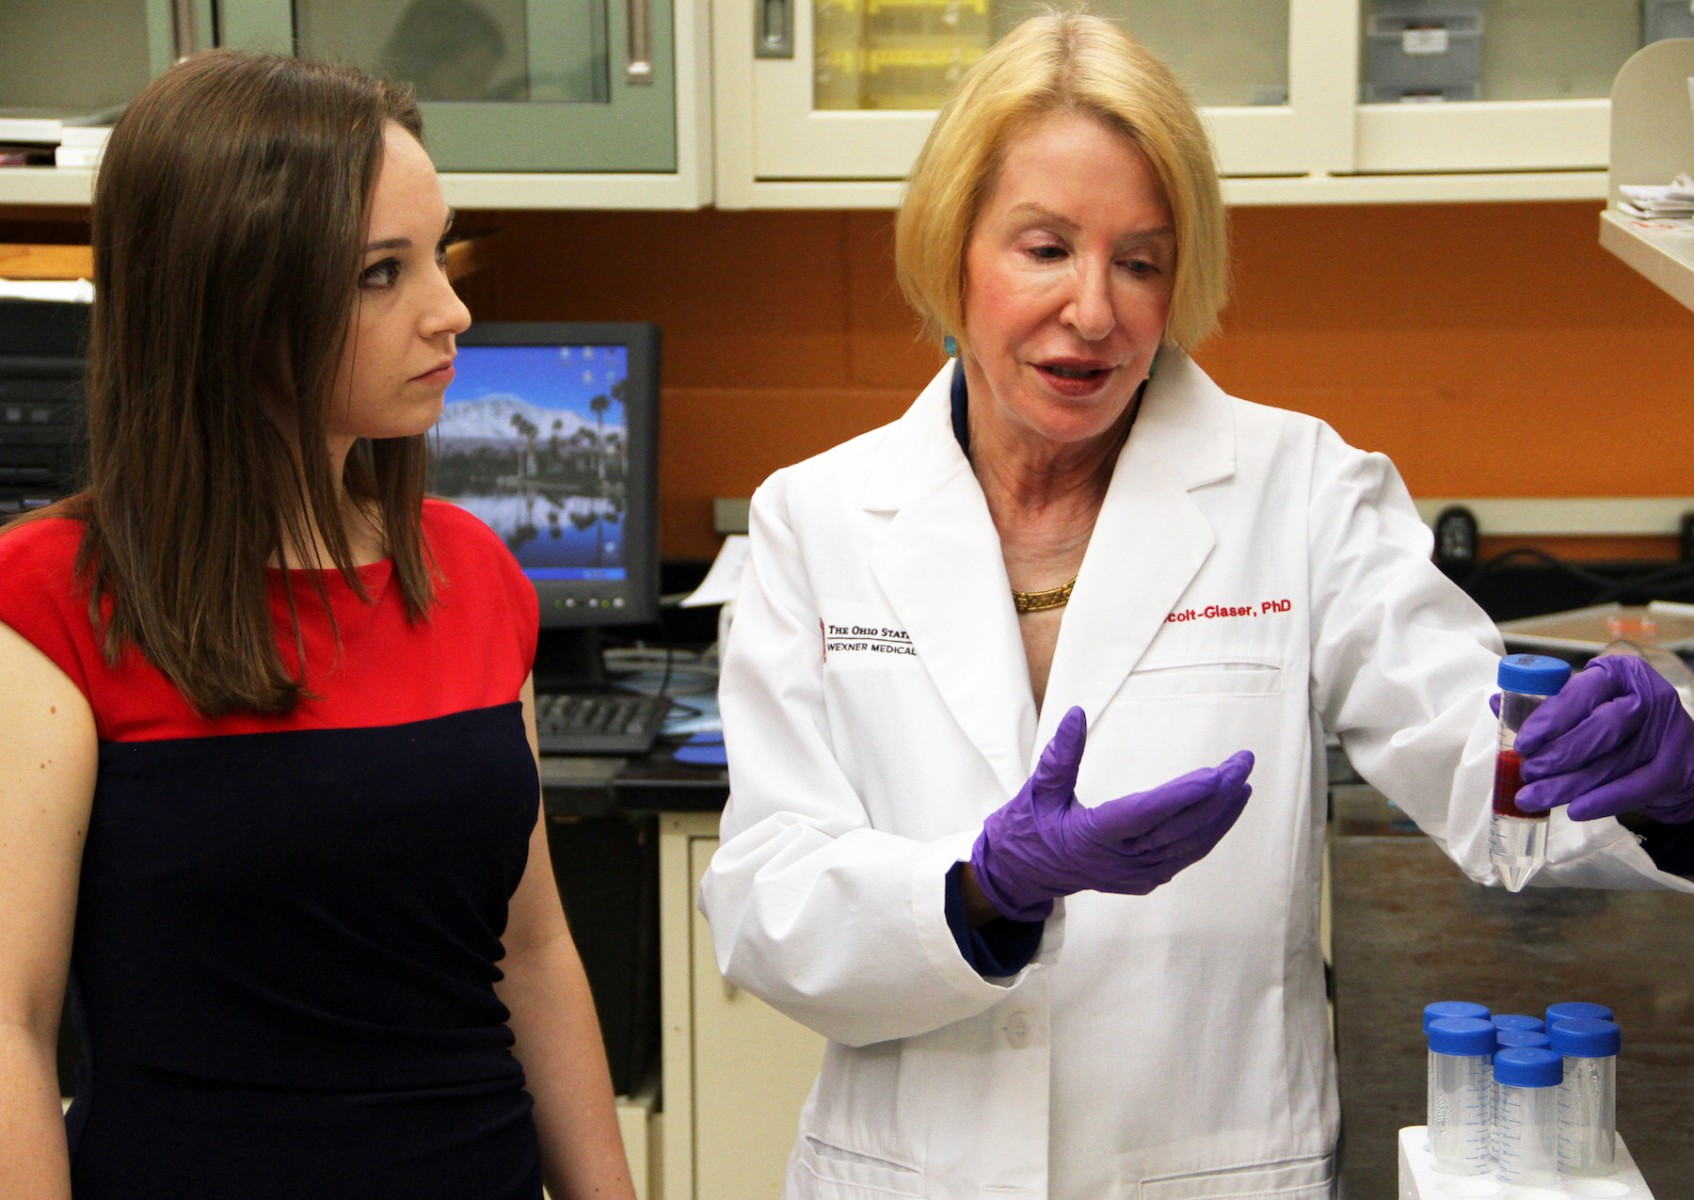 Ohio State scientists Stephanie Wilson (left) and Janice Kiecolt-Glaser examine a blood sample from a study conducted in the Clinical Research Center.